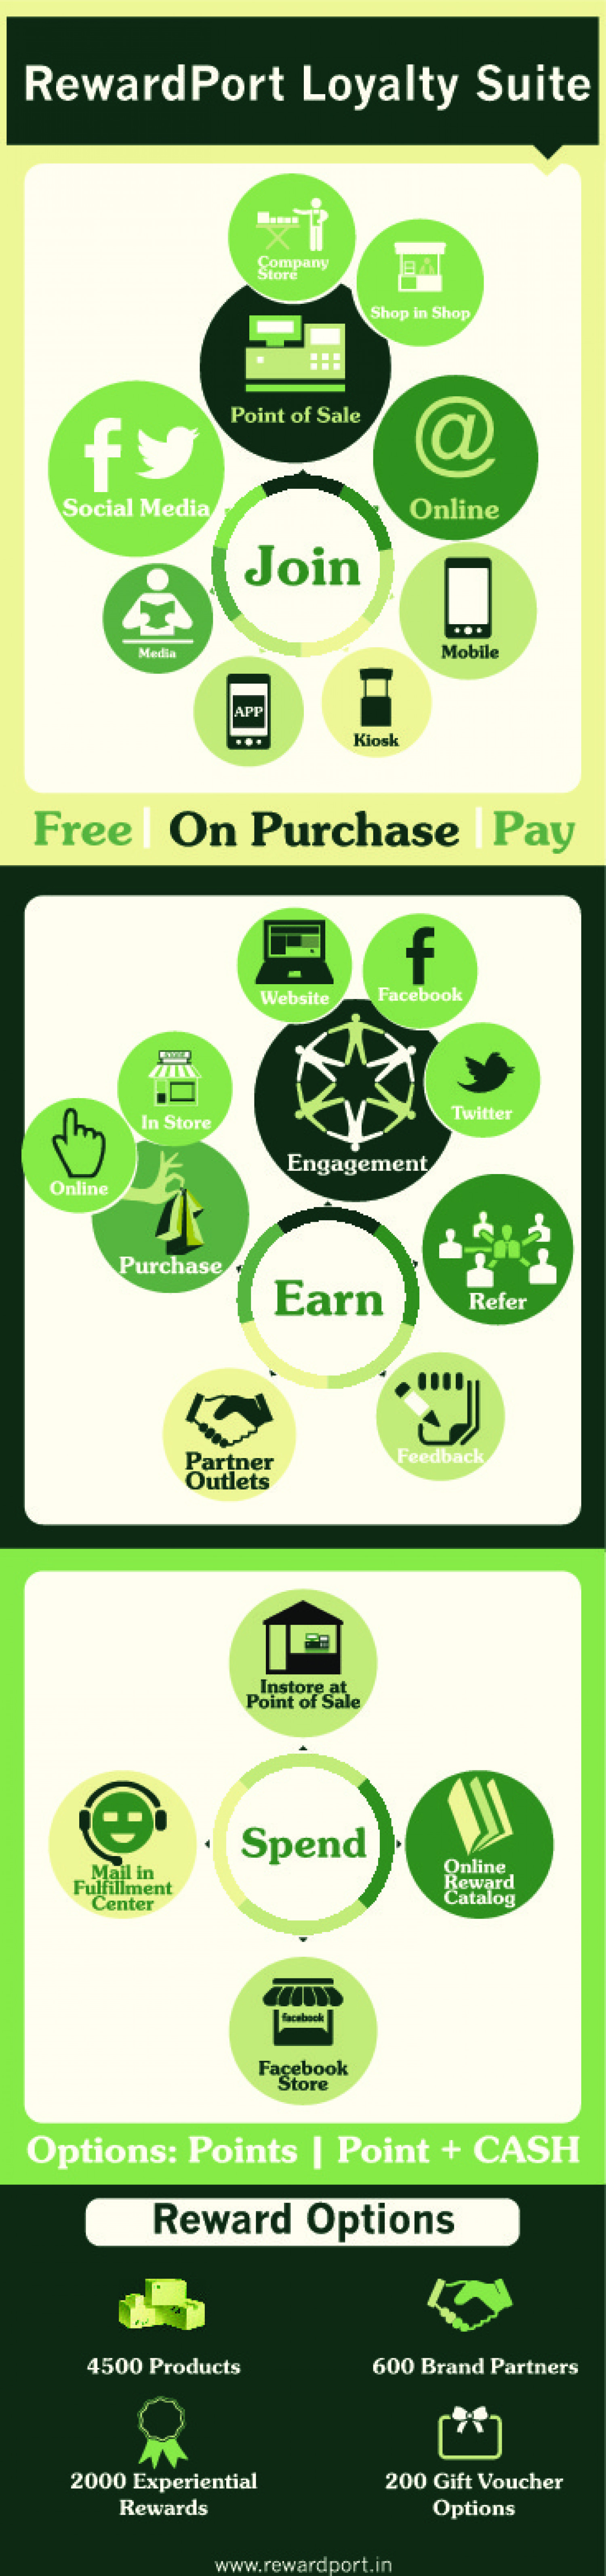 RewardPort Loyalty Suite  Infographic